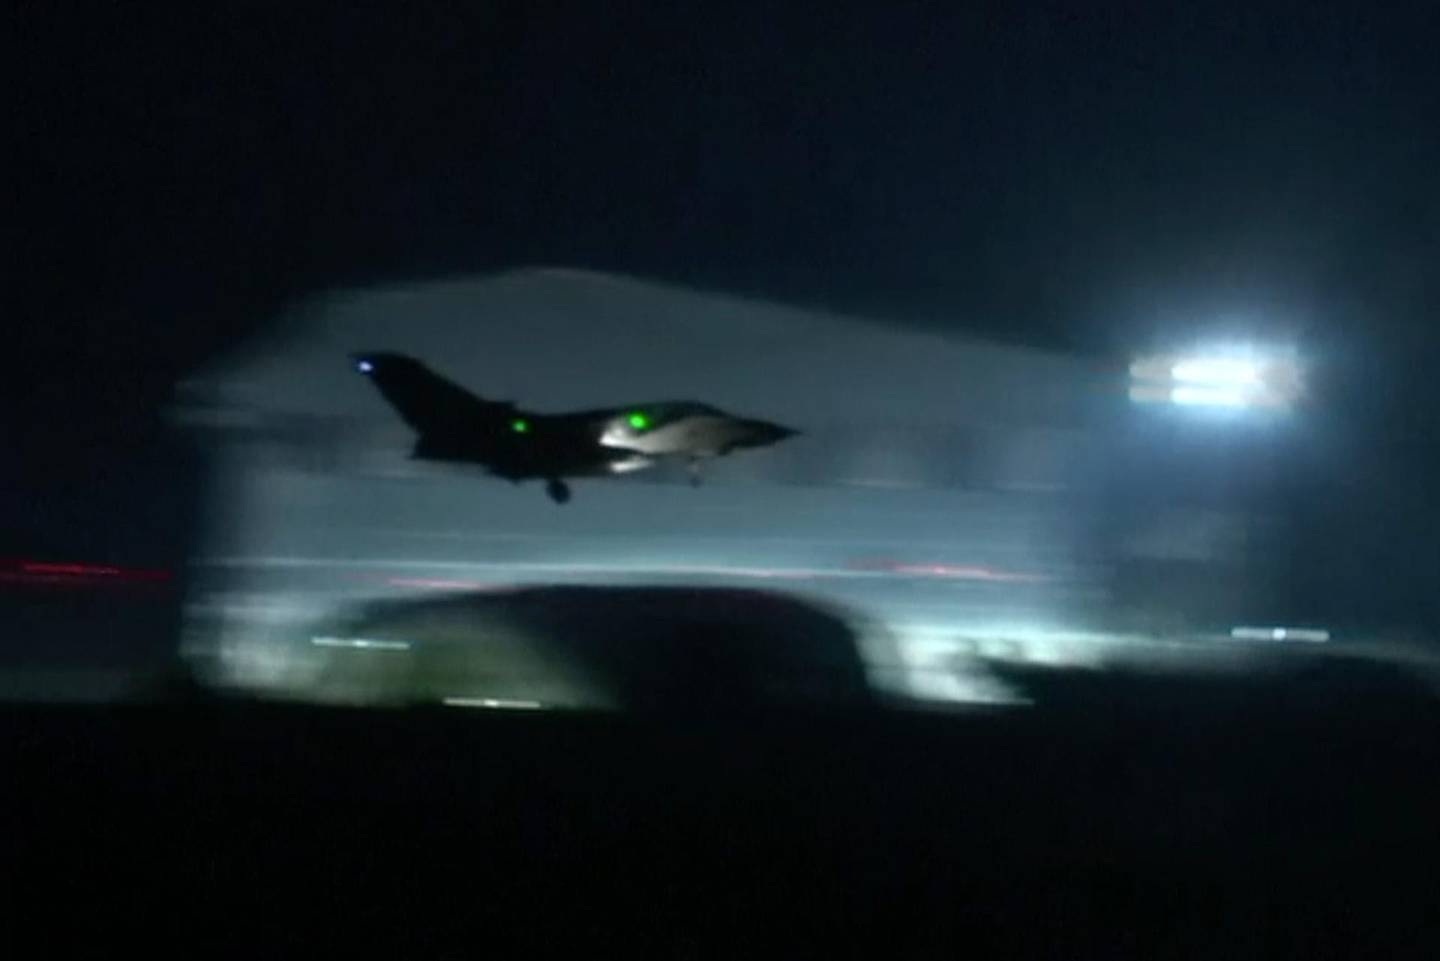 This image made from video shows a fighter jet landing at Akrotiri military British Royal Air Force Base, Cyprus, Saturday, April 14, 2018.  Fighter jets were seen taking off from a British Royal Air Force (RAF) base in Cyprus early on Saturday morning. Their destination was not revealed. The jets landed to Akrotiri Military Base, Cyprus, after the US President Donald Trump's announcement that the US, France and Britain together launched military strikes in Syria to punish President Bashar Assad for his alleged use of chemical weapons against civilians and to deter him from doing it again.(AP Video)